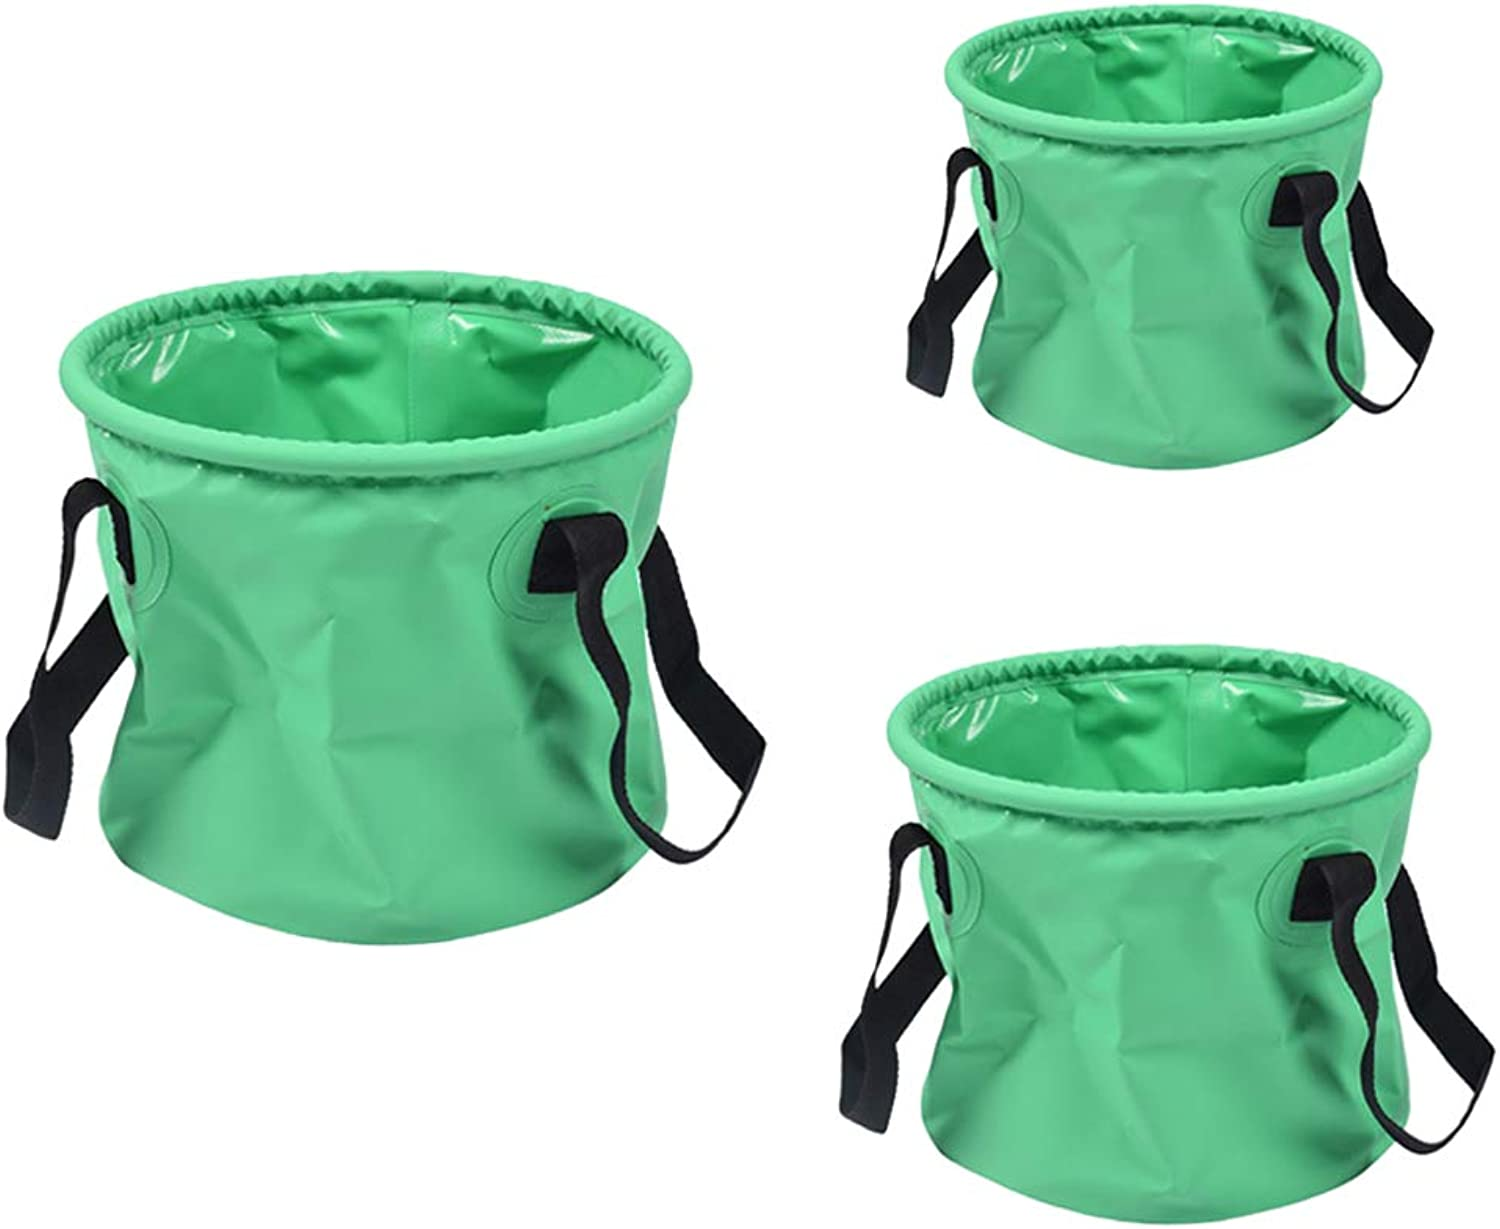 Flameer 3X Portable Water Pail 10L 20L 30L Compactable Folding PVC Bucket Homeware with Sturdy Handle Straps for Car Washing Home Storage